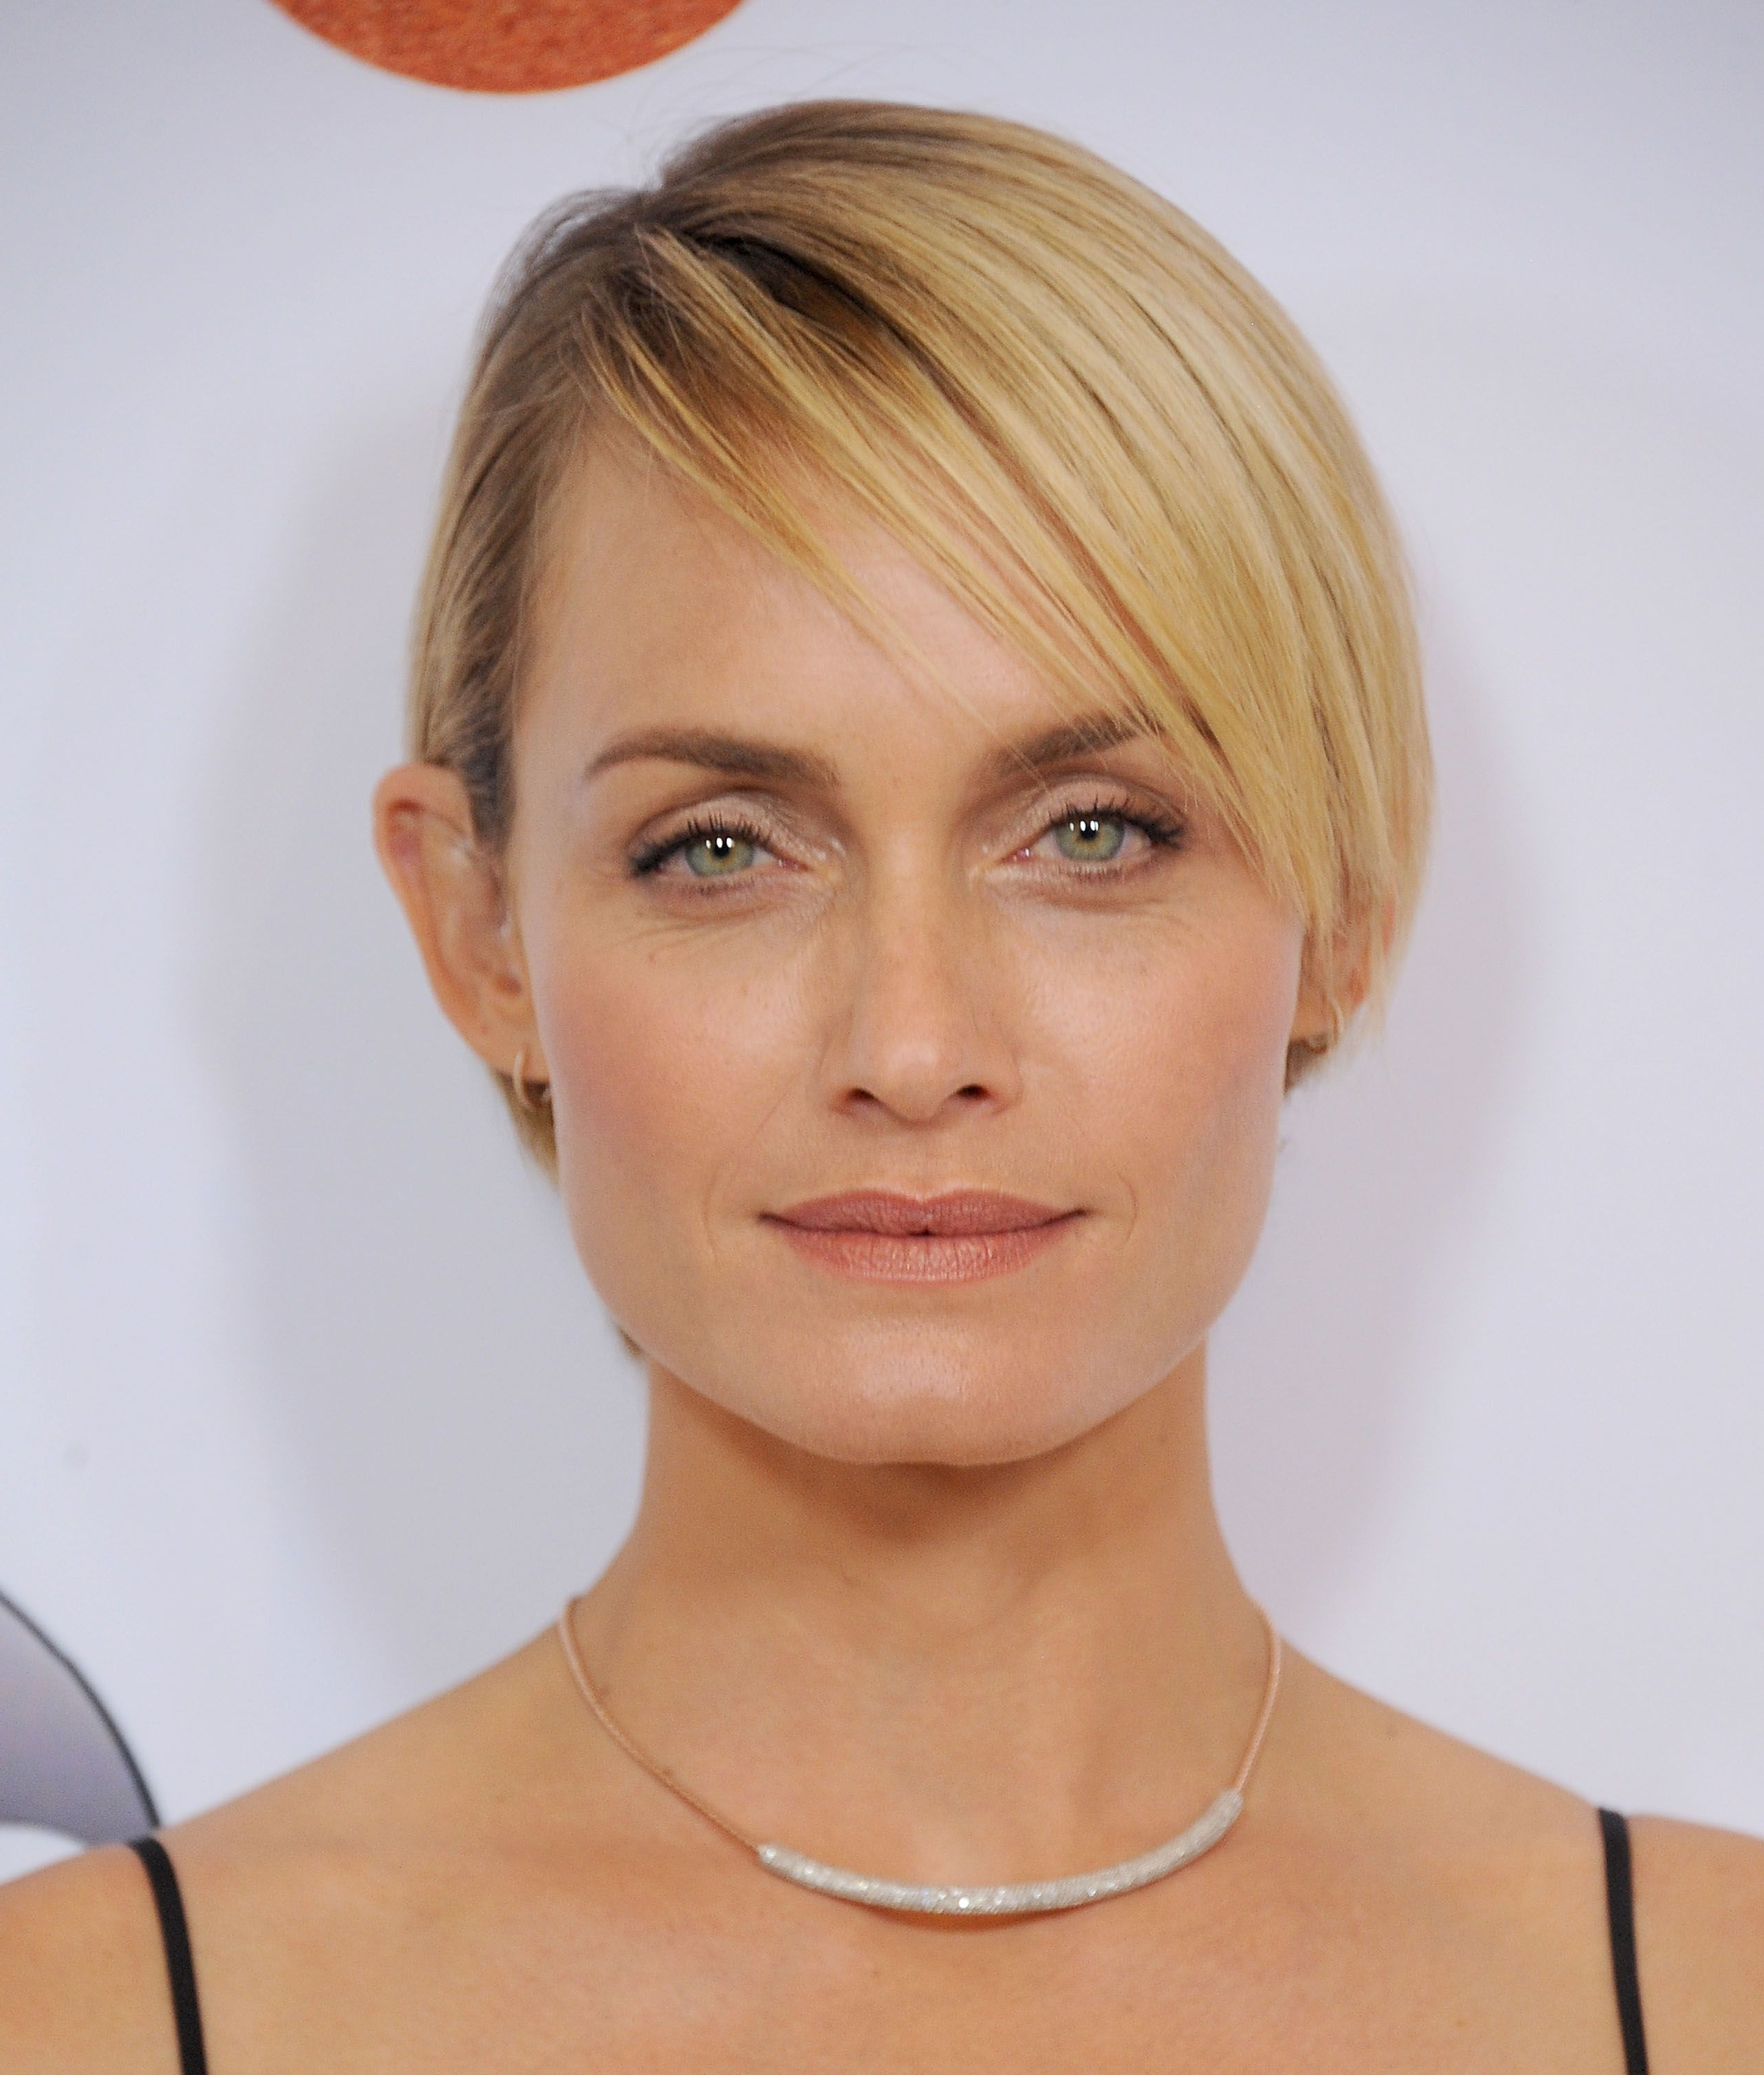 65 Best Short Hairstyles, Haircuts, And Short Hair Ideas For 2018 With Regard To Short Haircuts That Make You Look Younger (View 14 of 25)